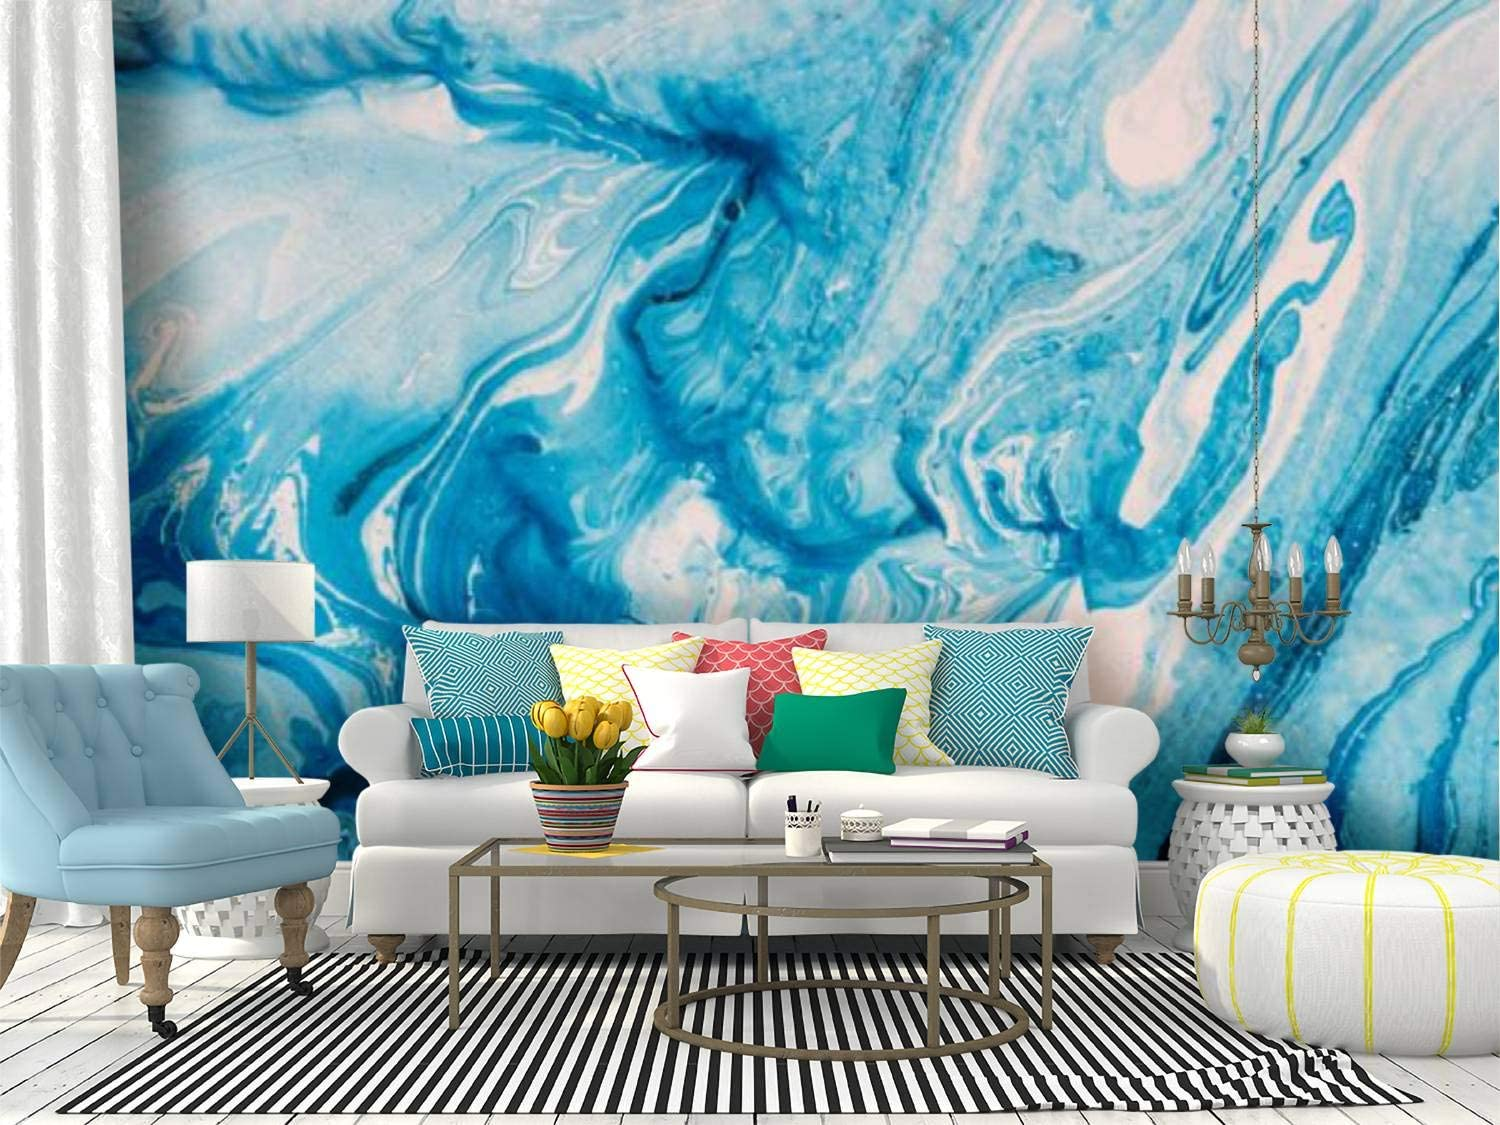 Abstract Painting Marble Effect Painting Mixed Azure And White Oil Canvas Print Wallpaper Wall Mural Self Adhesive Peel Stick Wallpaper Home Craft Wall Decal Wall Poster Sticker For Living Room